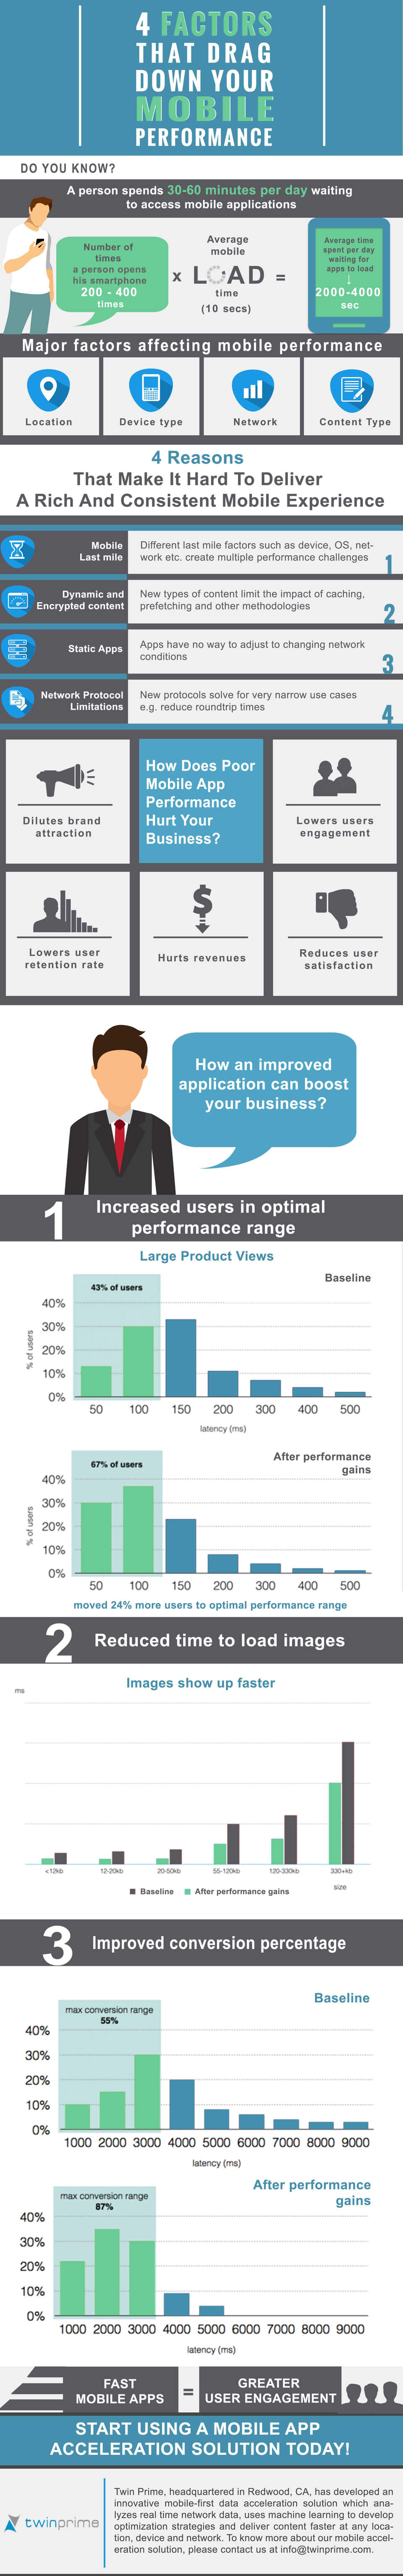 4 Factors that Drag Down Performance of Your Mobile App